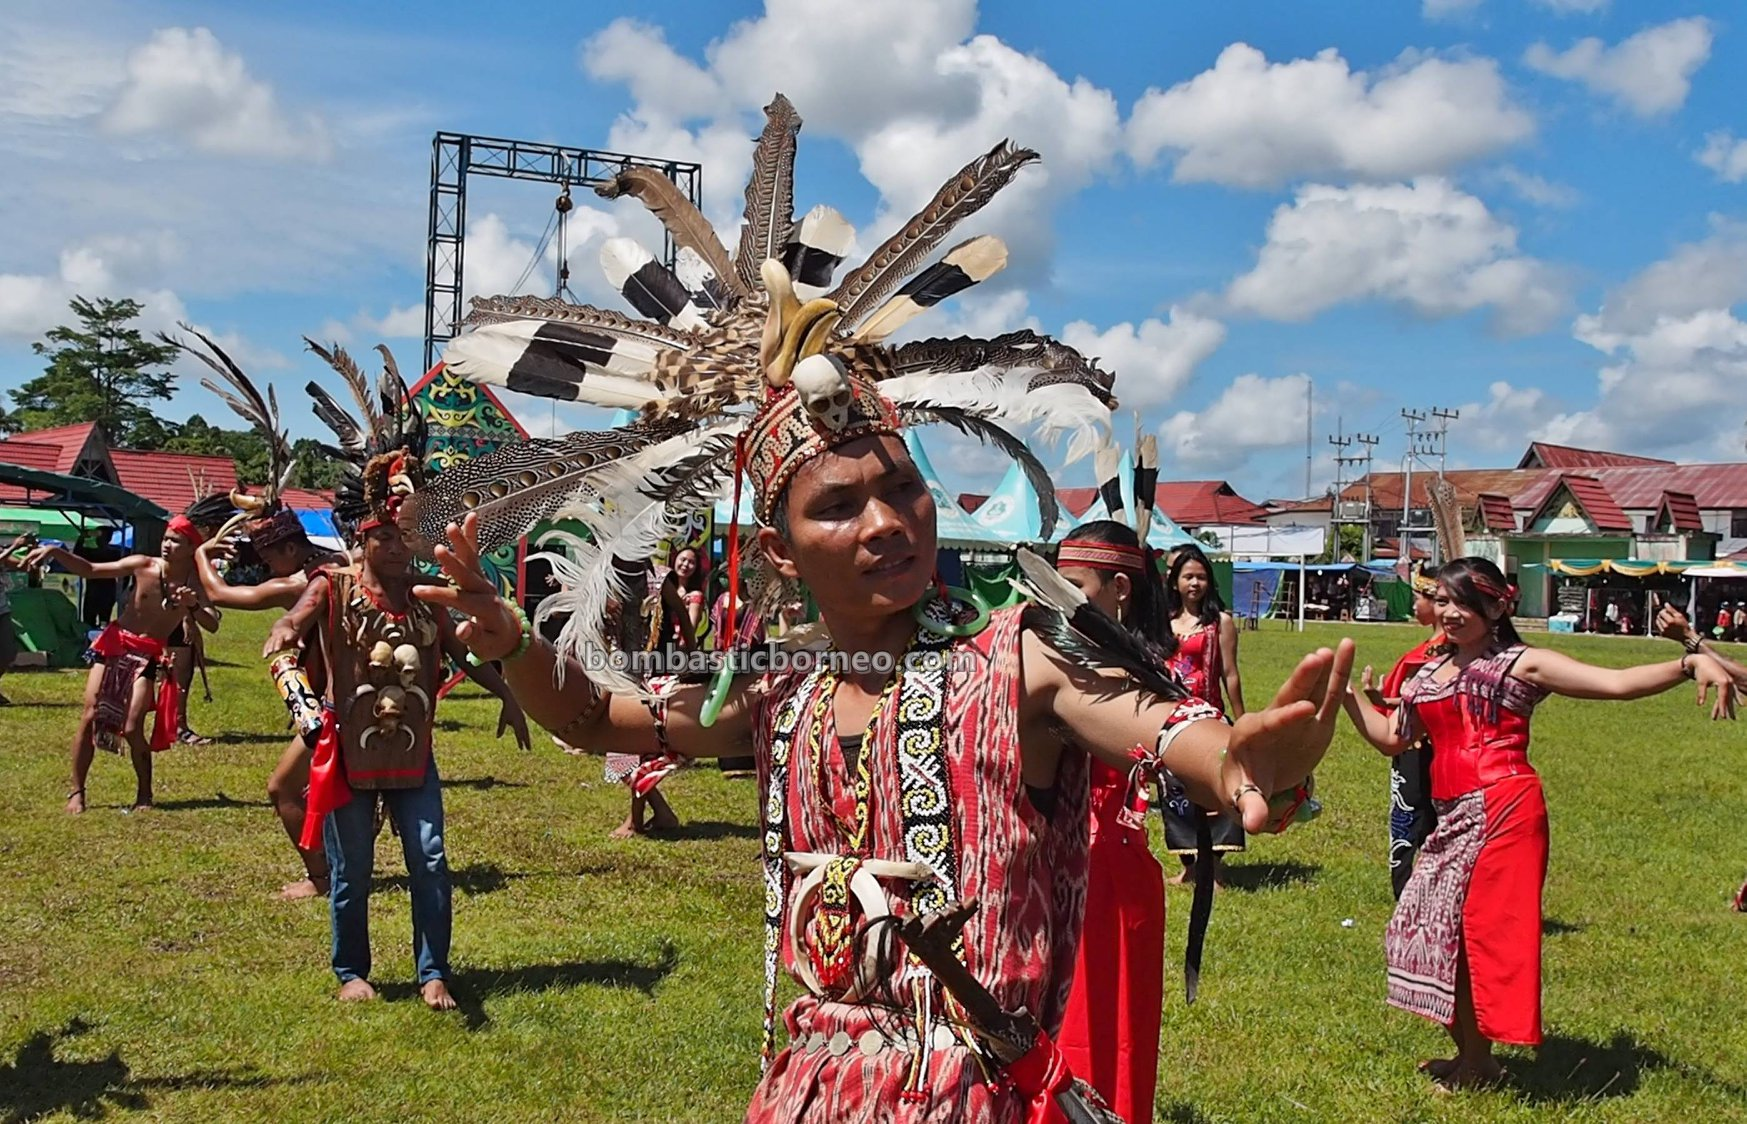 Gawai Dayak Kapuas Hulu, harvest festival, budaya, Indonesia, West Kalimantan, Putussibau, ethnic, indgenous, native, tribe, tourist attraction, travel guide, Borneo, Trans Border, 西加里曼丹甘布安斯乌鲁